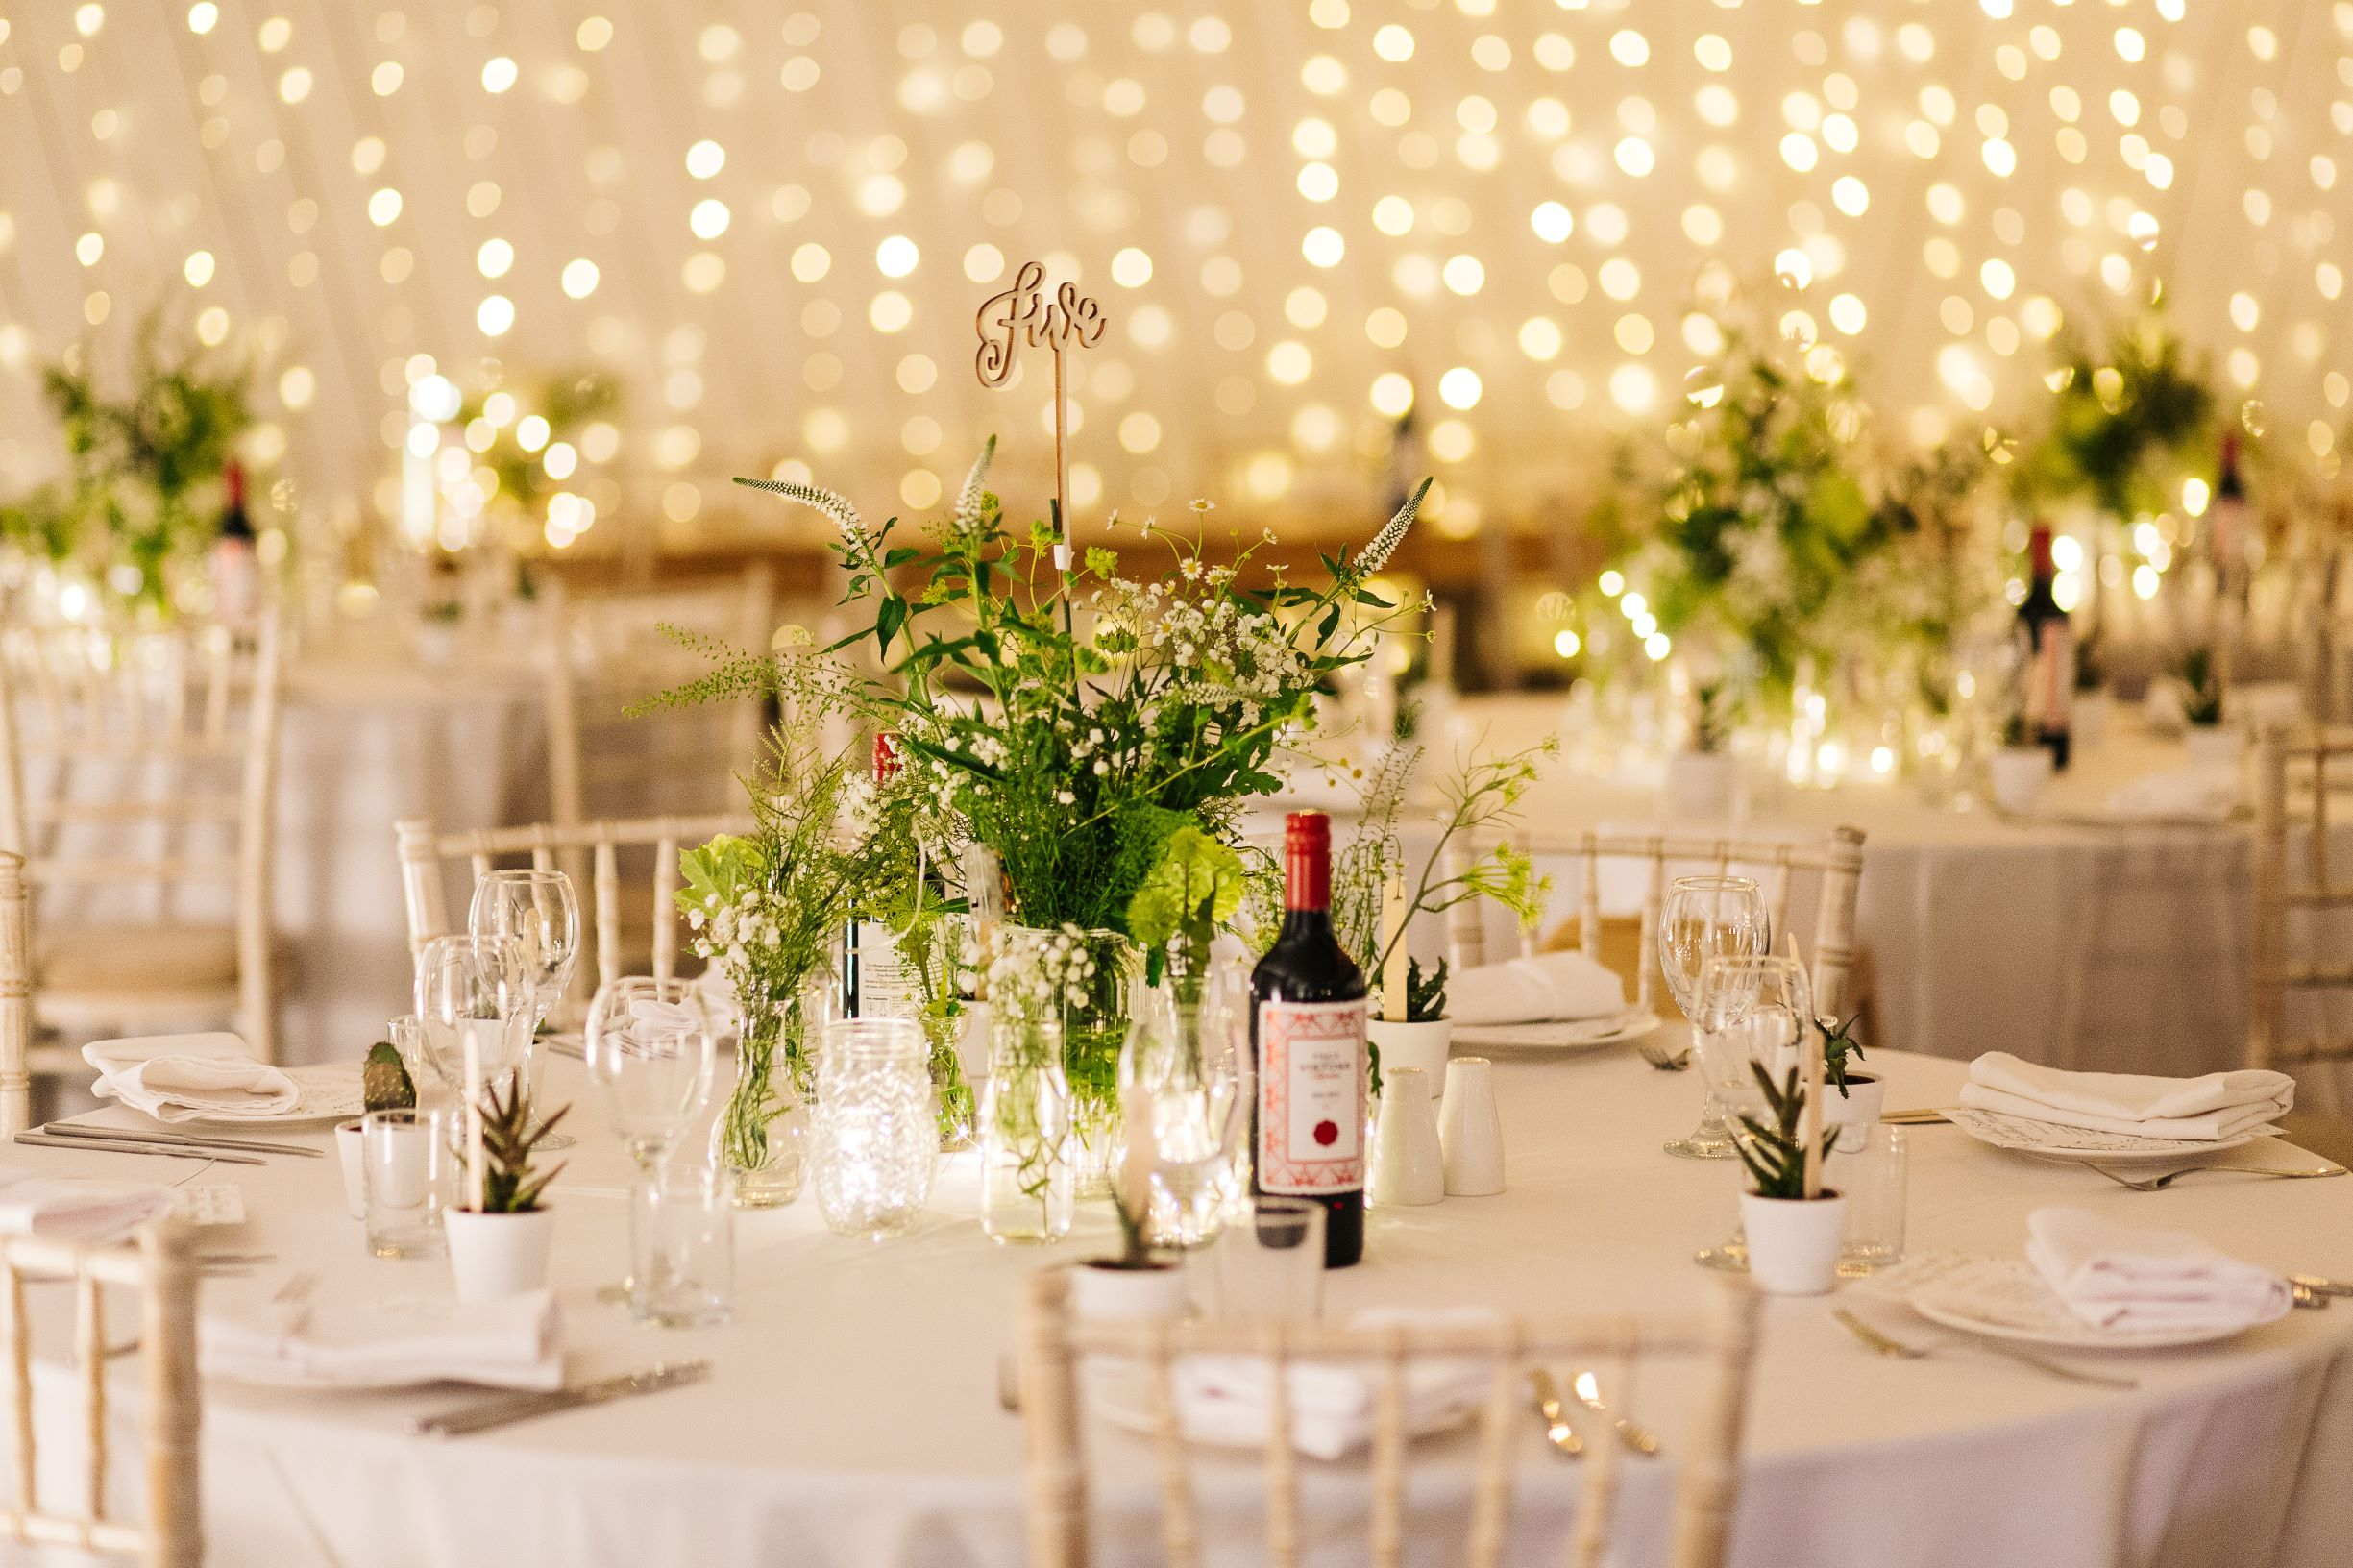 Table centrepieces at The Normans. Photo by pauljosephphotography.co.uk.jpg